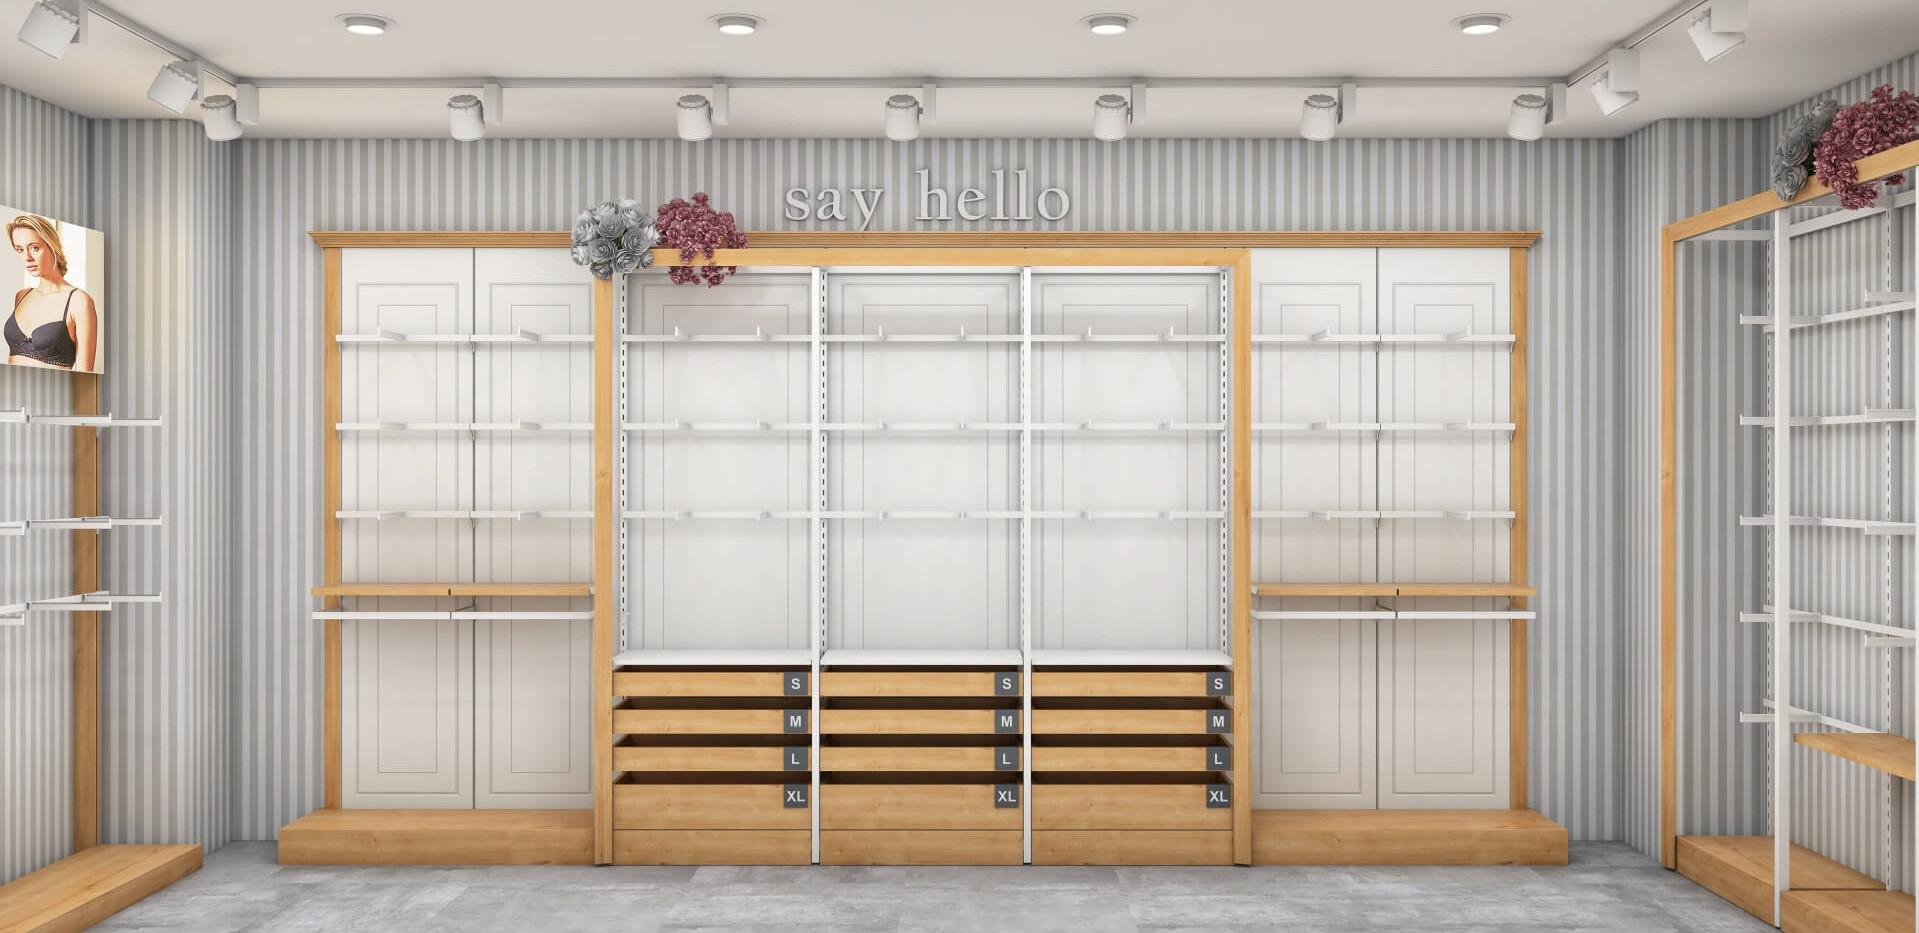 Rosabella - Fashion Store Shop Design-3.